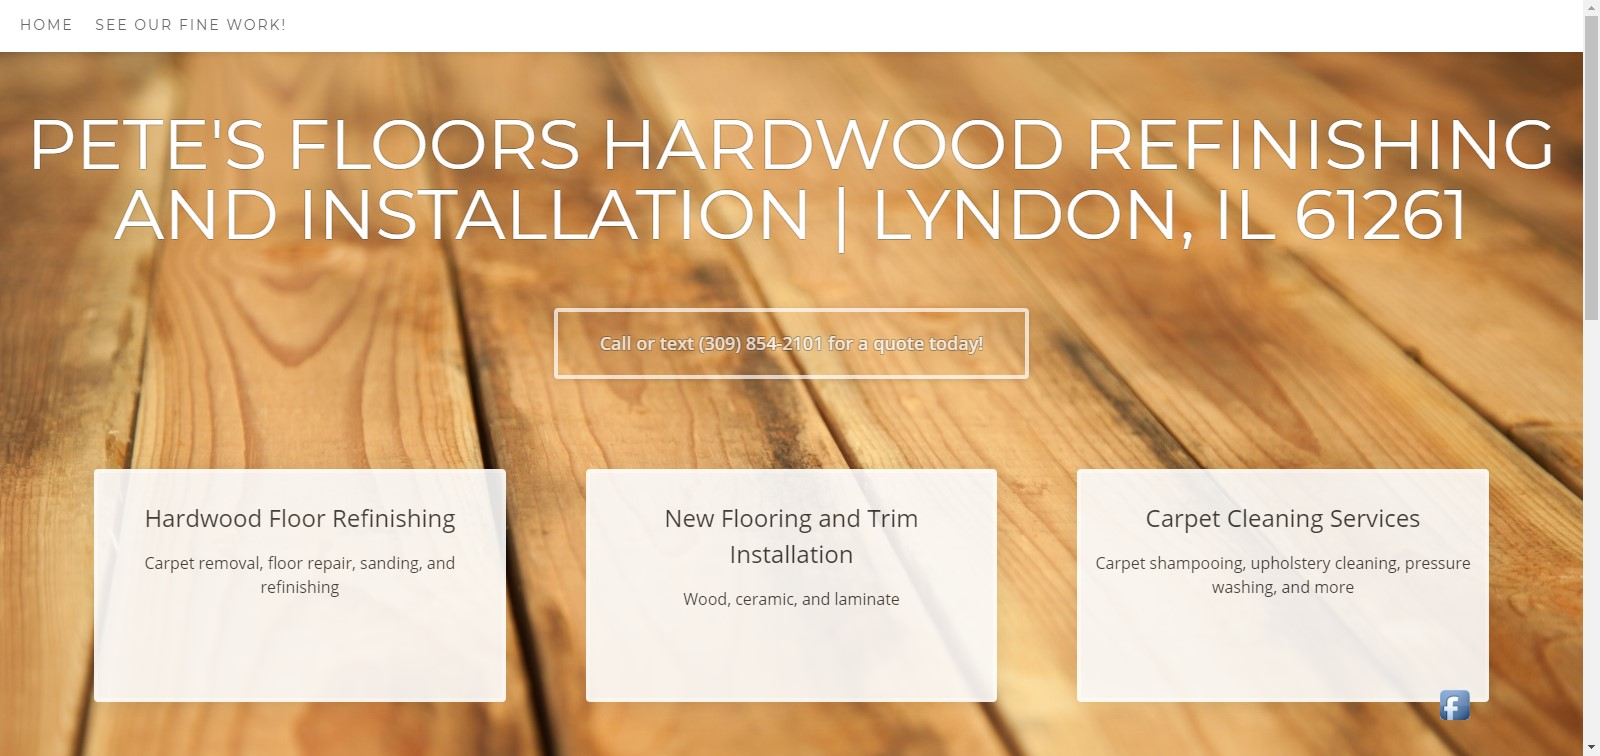 Pete's Floors Hardwood Refinishing And Installation